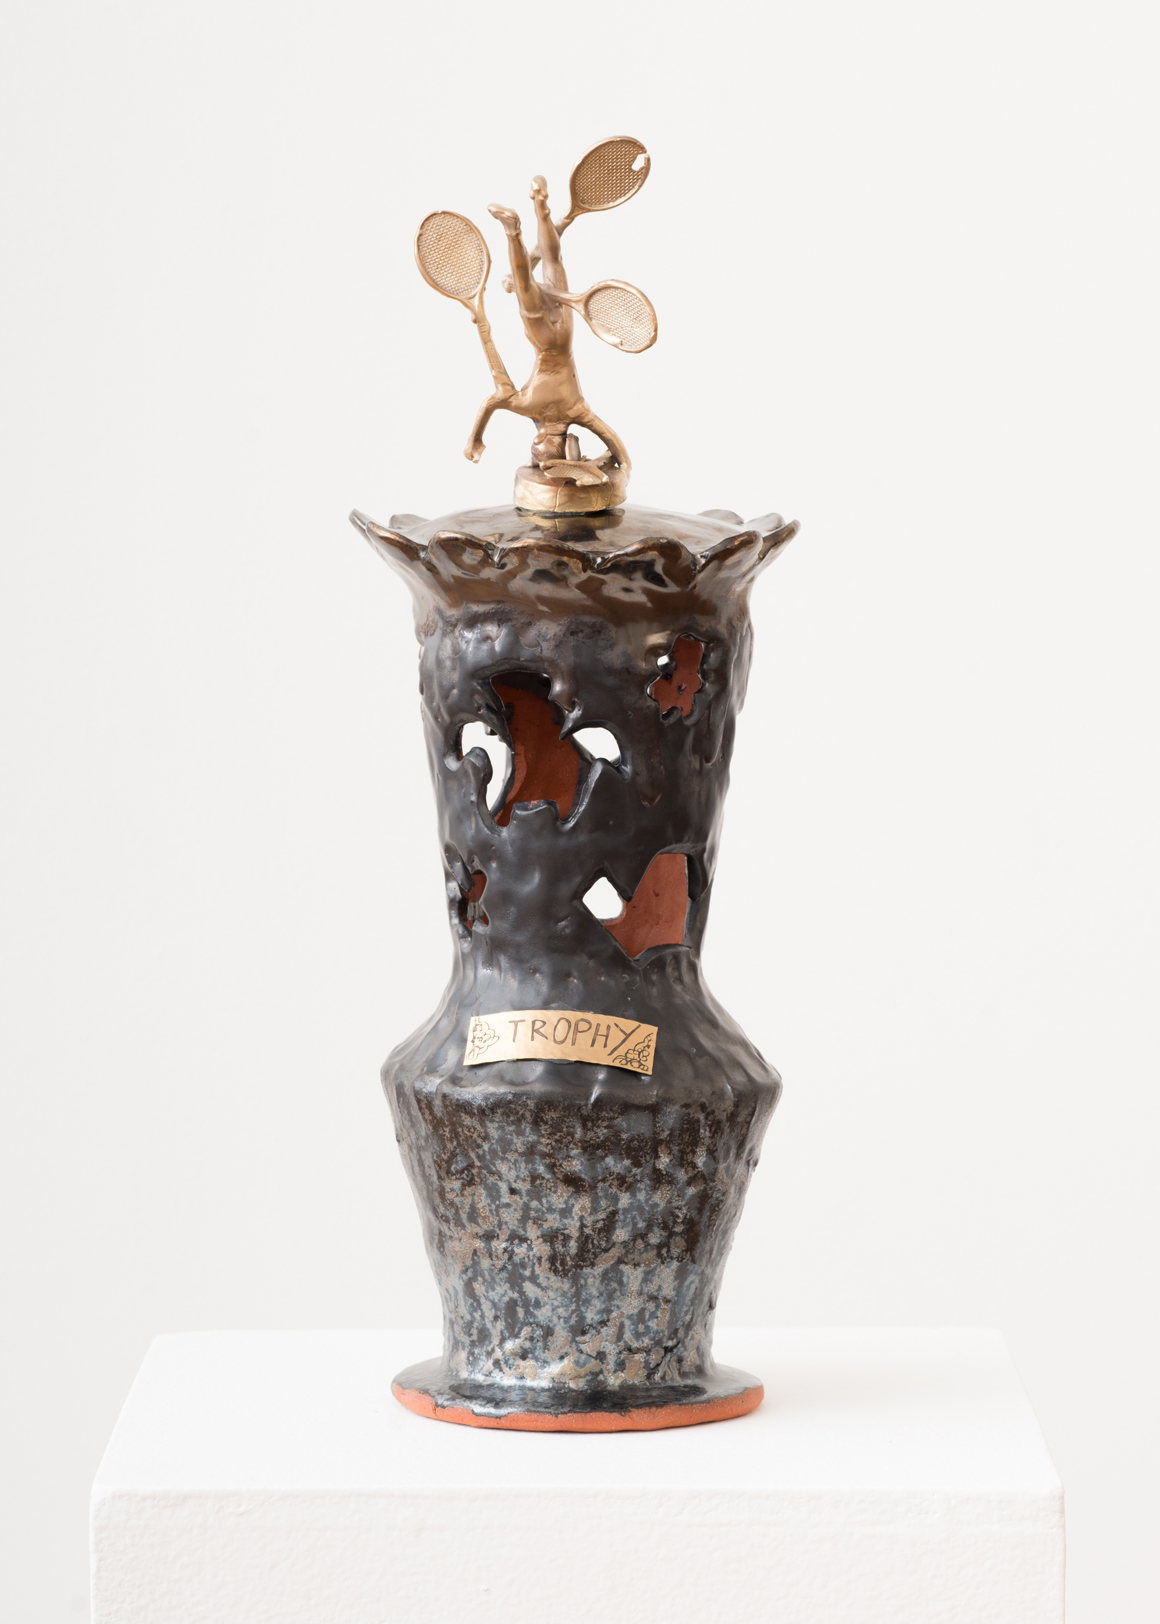 <p><em>Trophy (trophy)</em><span class='media'>Earthenware, glaze, bronze, brass</span>17 x 6 x 6 in (43.2 x 15.2 x 15.2 cm)<br>2018<br><a class='inquire' href='mailto:info@gildargallery.com?subject=Artwork Inquiry SKAN0003&body=I am interested in finding out more about Trophy (trophy) by Stephanie Kantor'>Inquire</a></p>